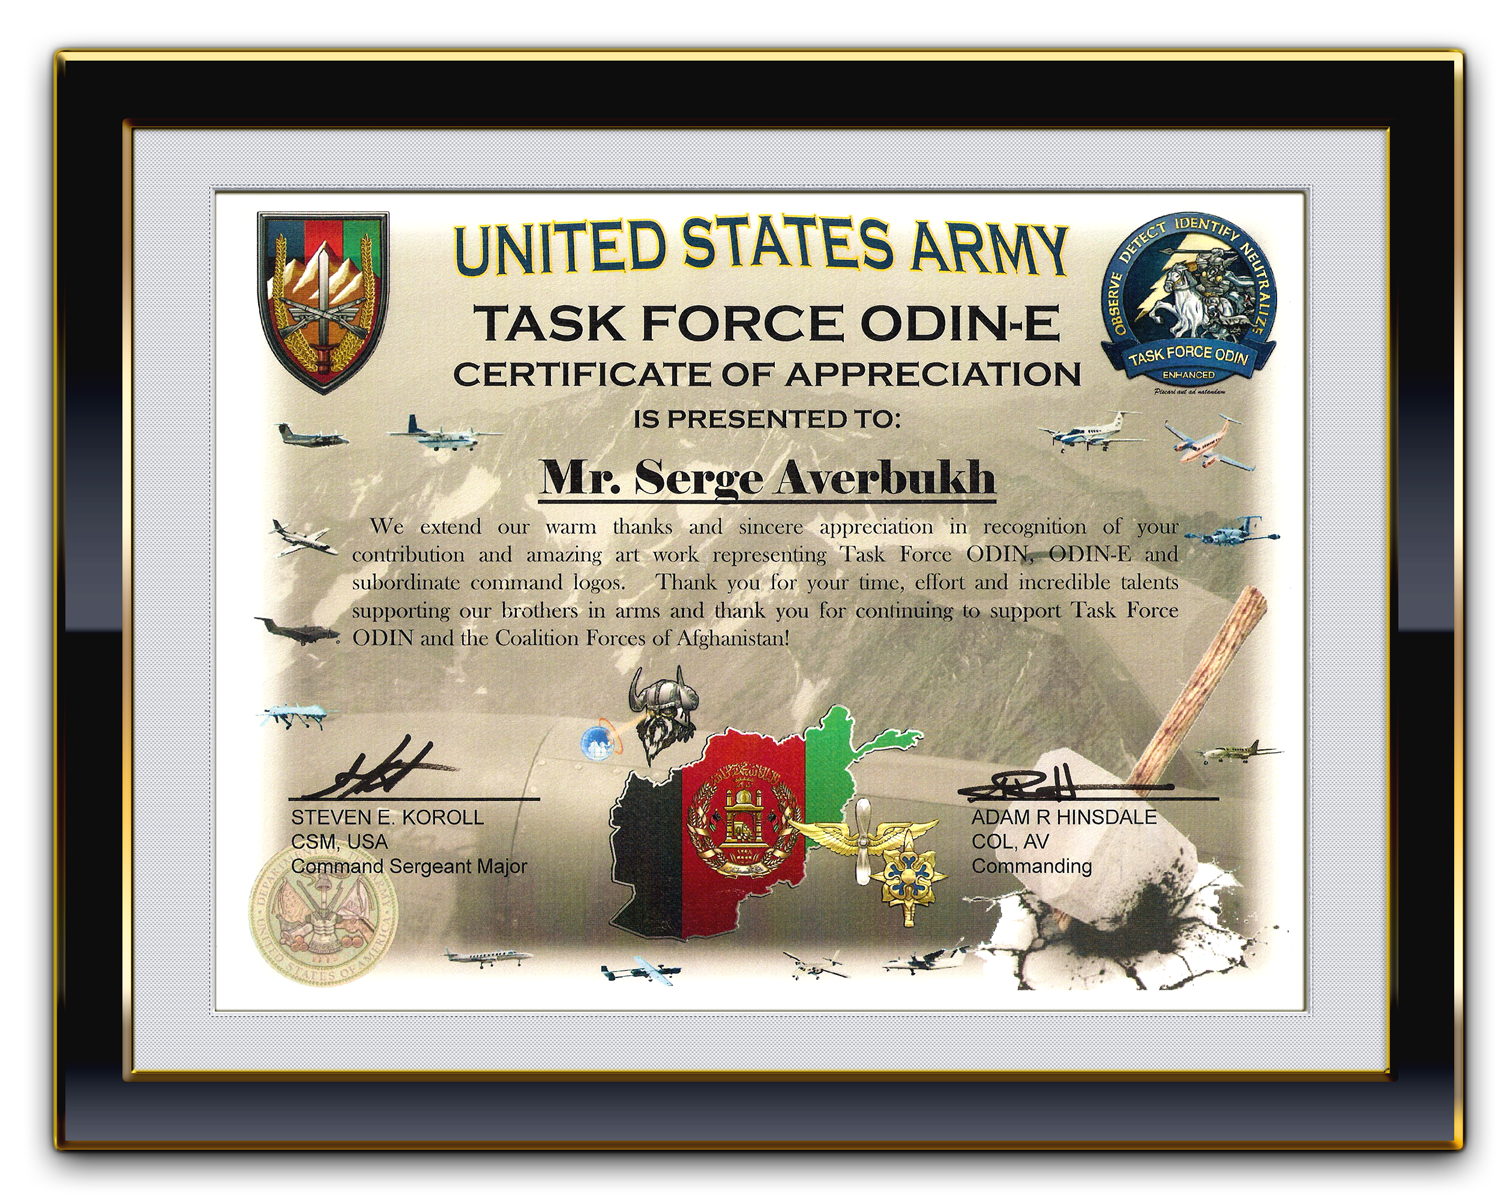 Doc20001496 Army Certificate of Appreciation Template – Military Certificate of Appreciation Template